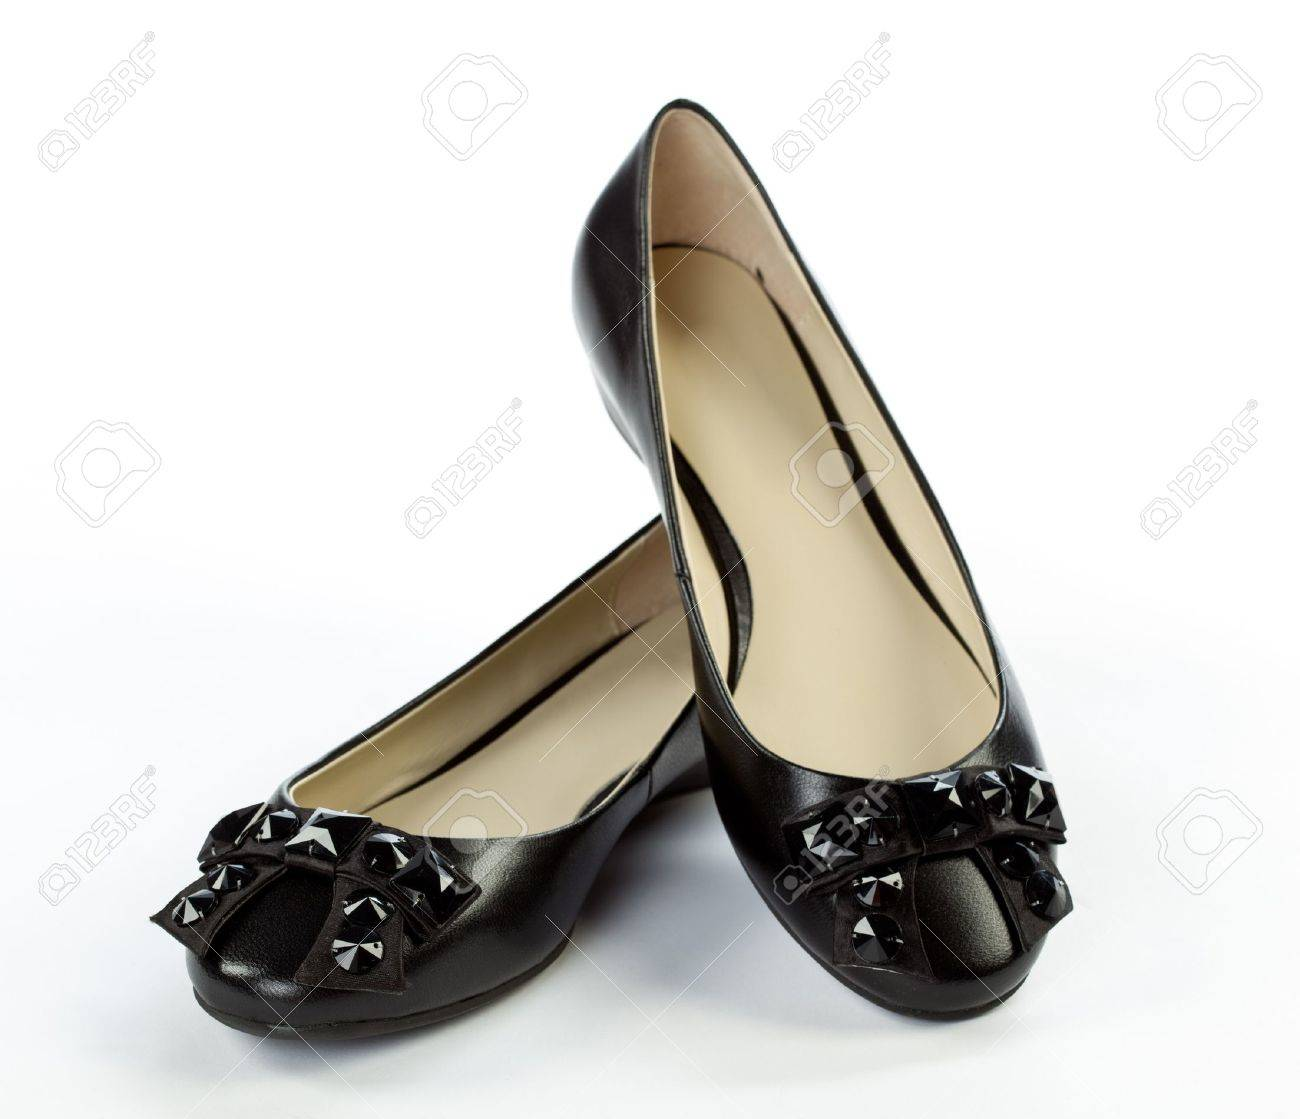 1133eaad5 Pair Of Elegant Flat Shoes On White Background Stock Photo, Picture ...